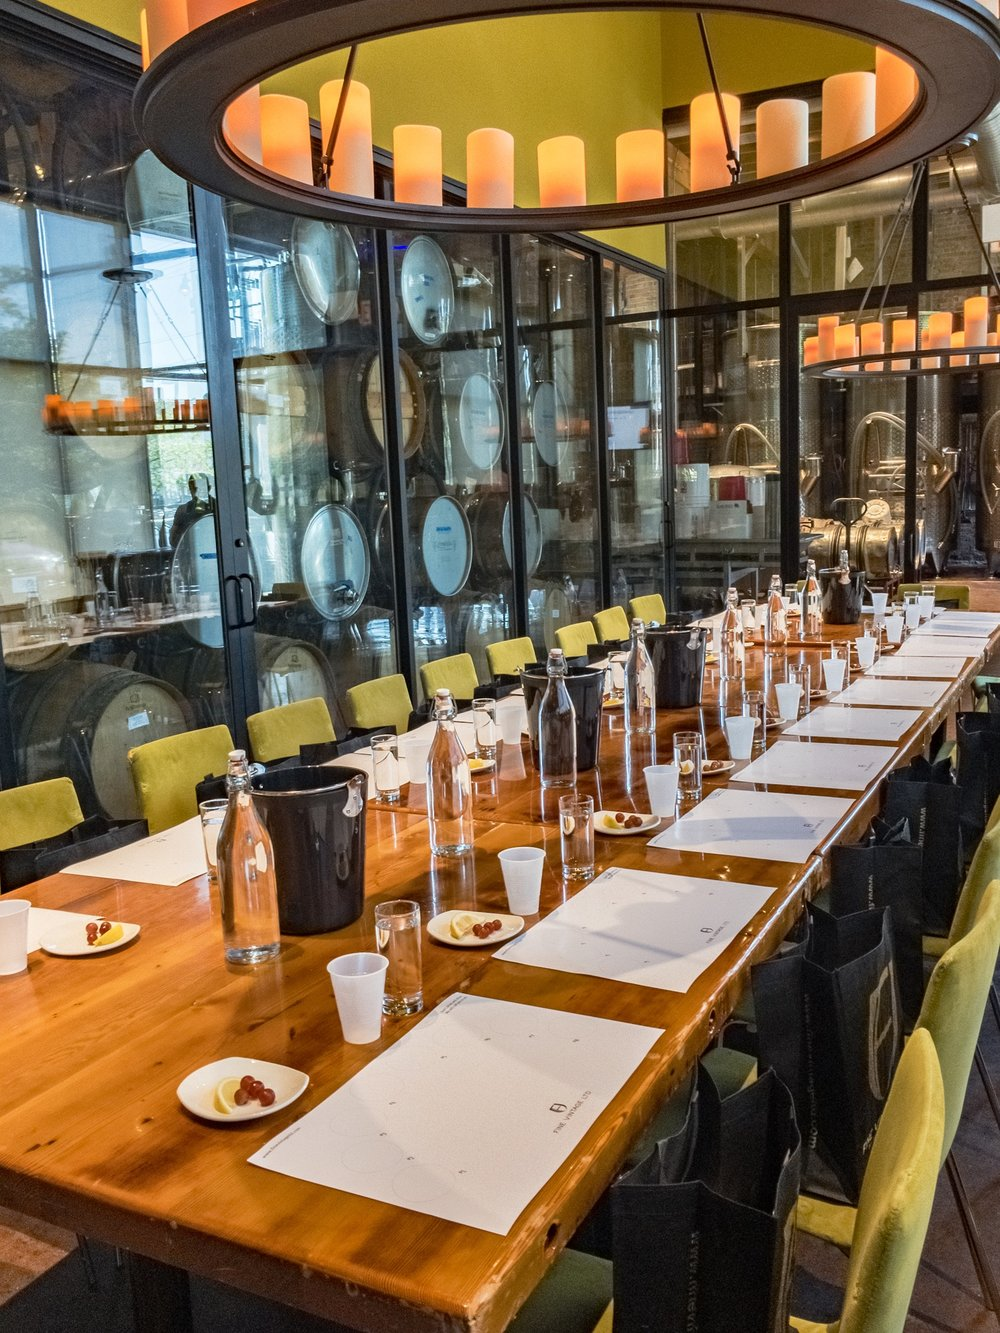 The Barrel room at City Winery in Chicago (Photo: (c) Lyn Farmer)